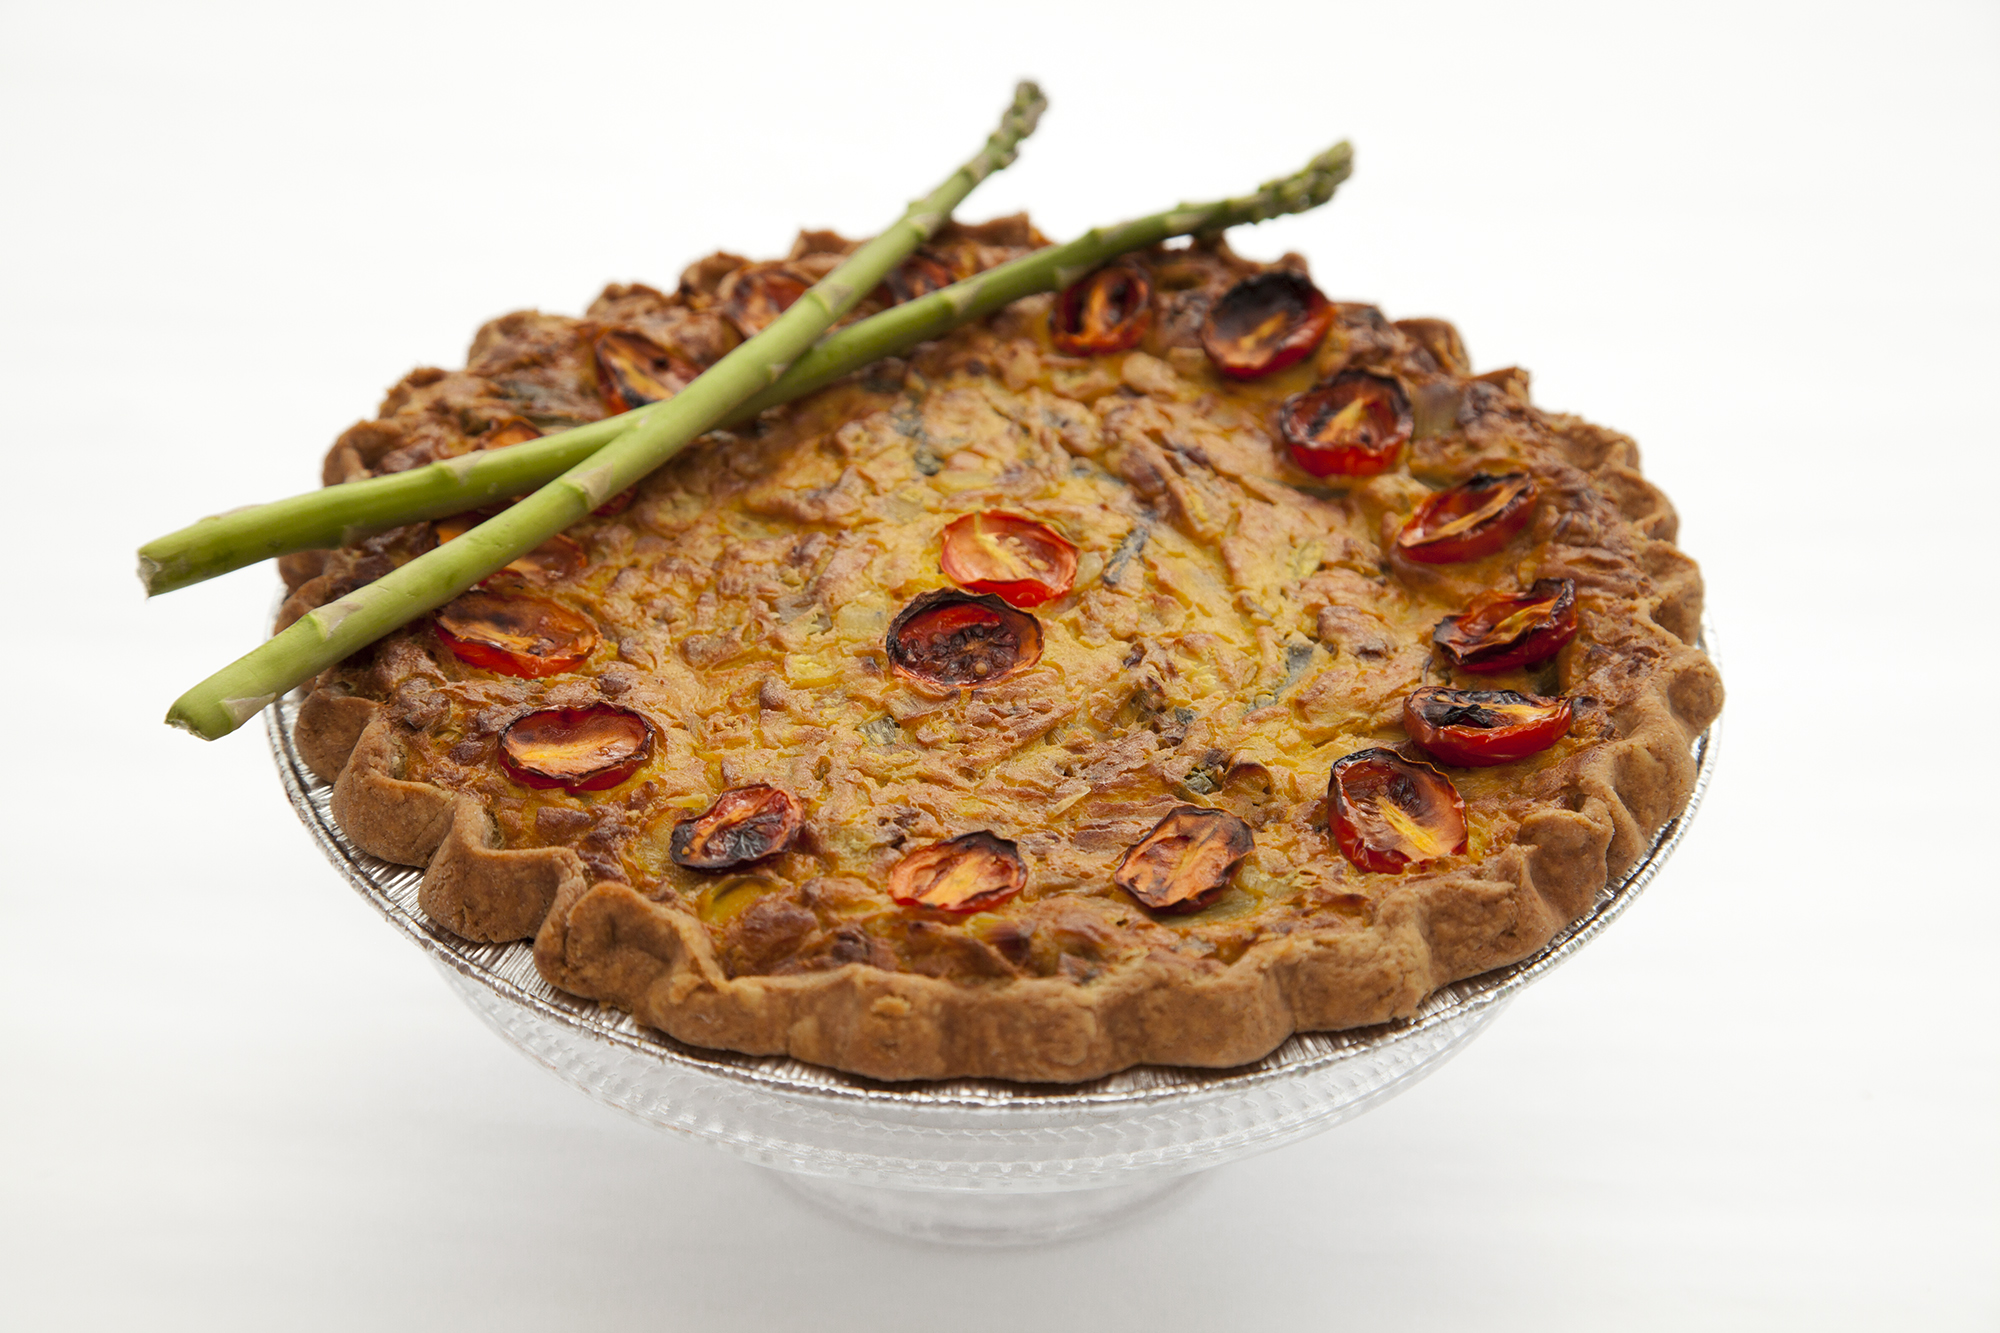 Sundried Tomato and Asparagus Quiche  - Two Sizes